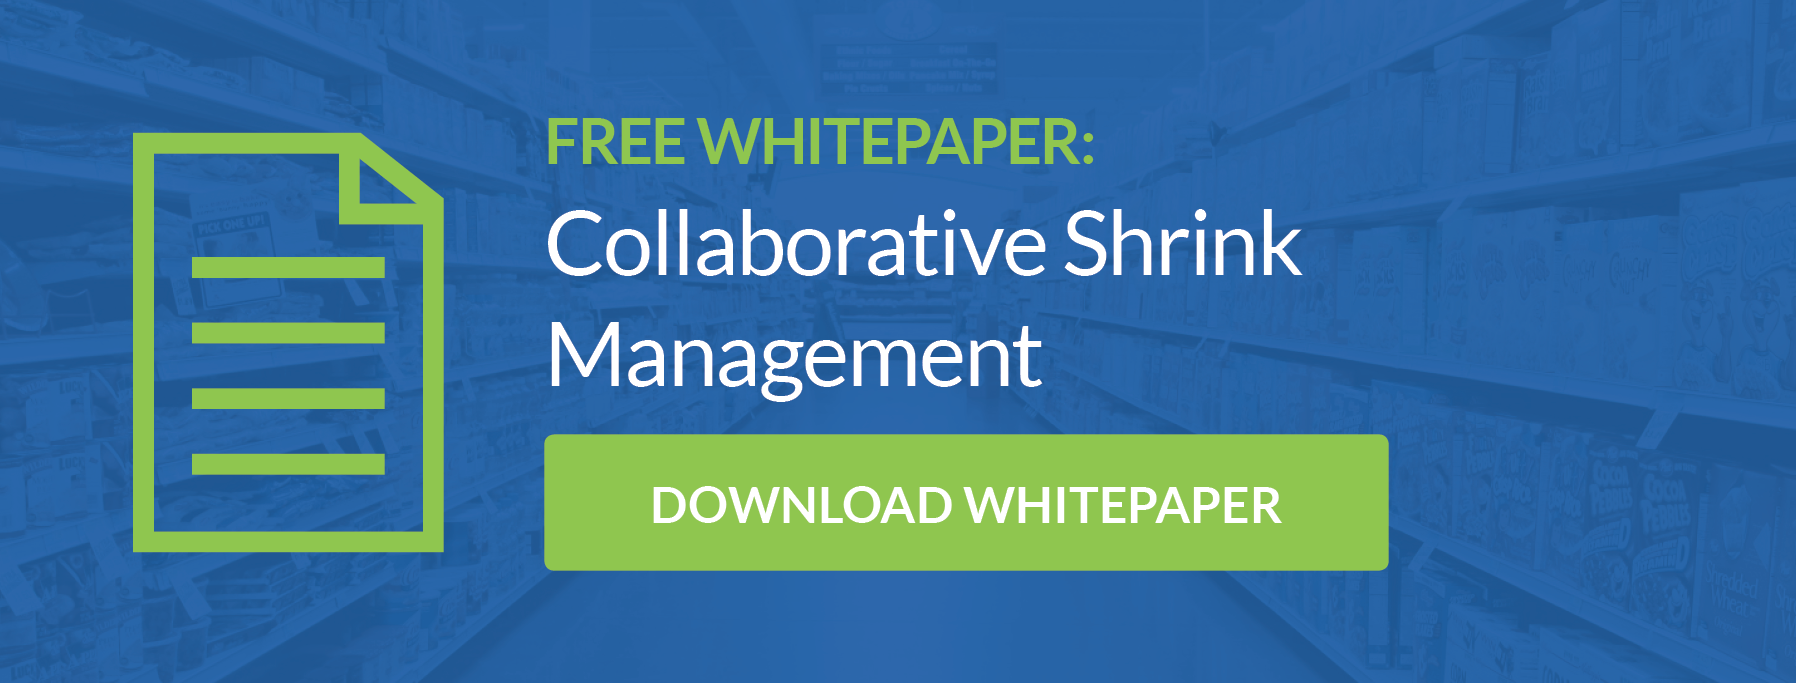 Get Your Collaborative Shrink Management Whitepaper